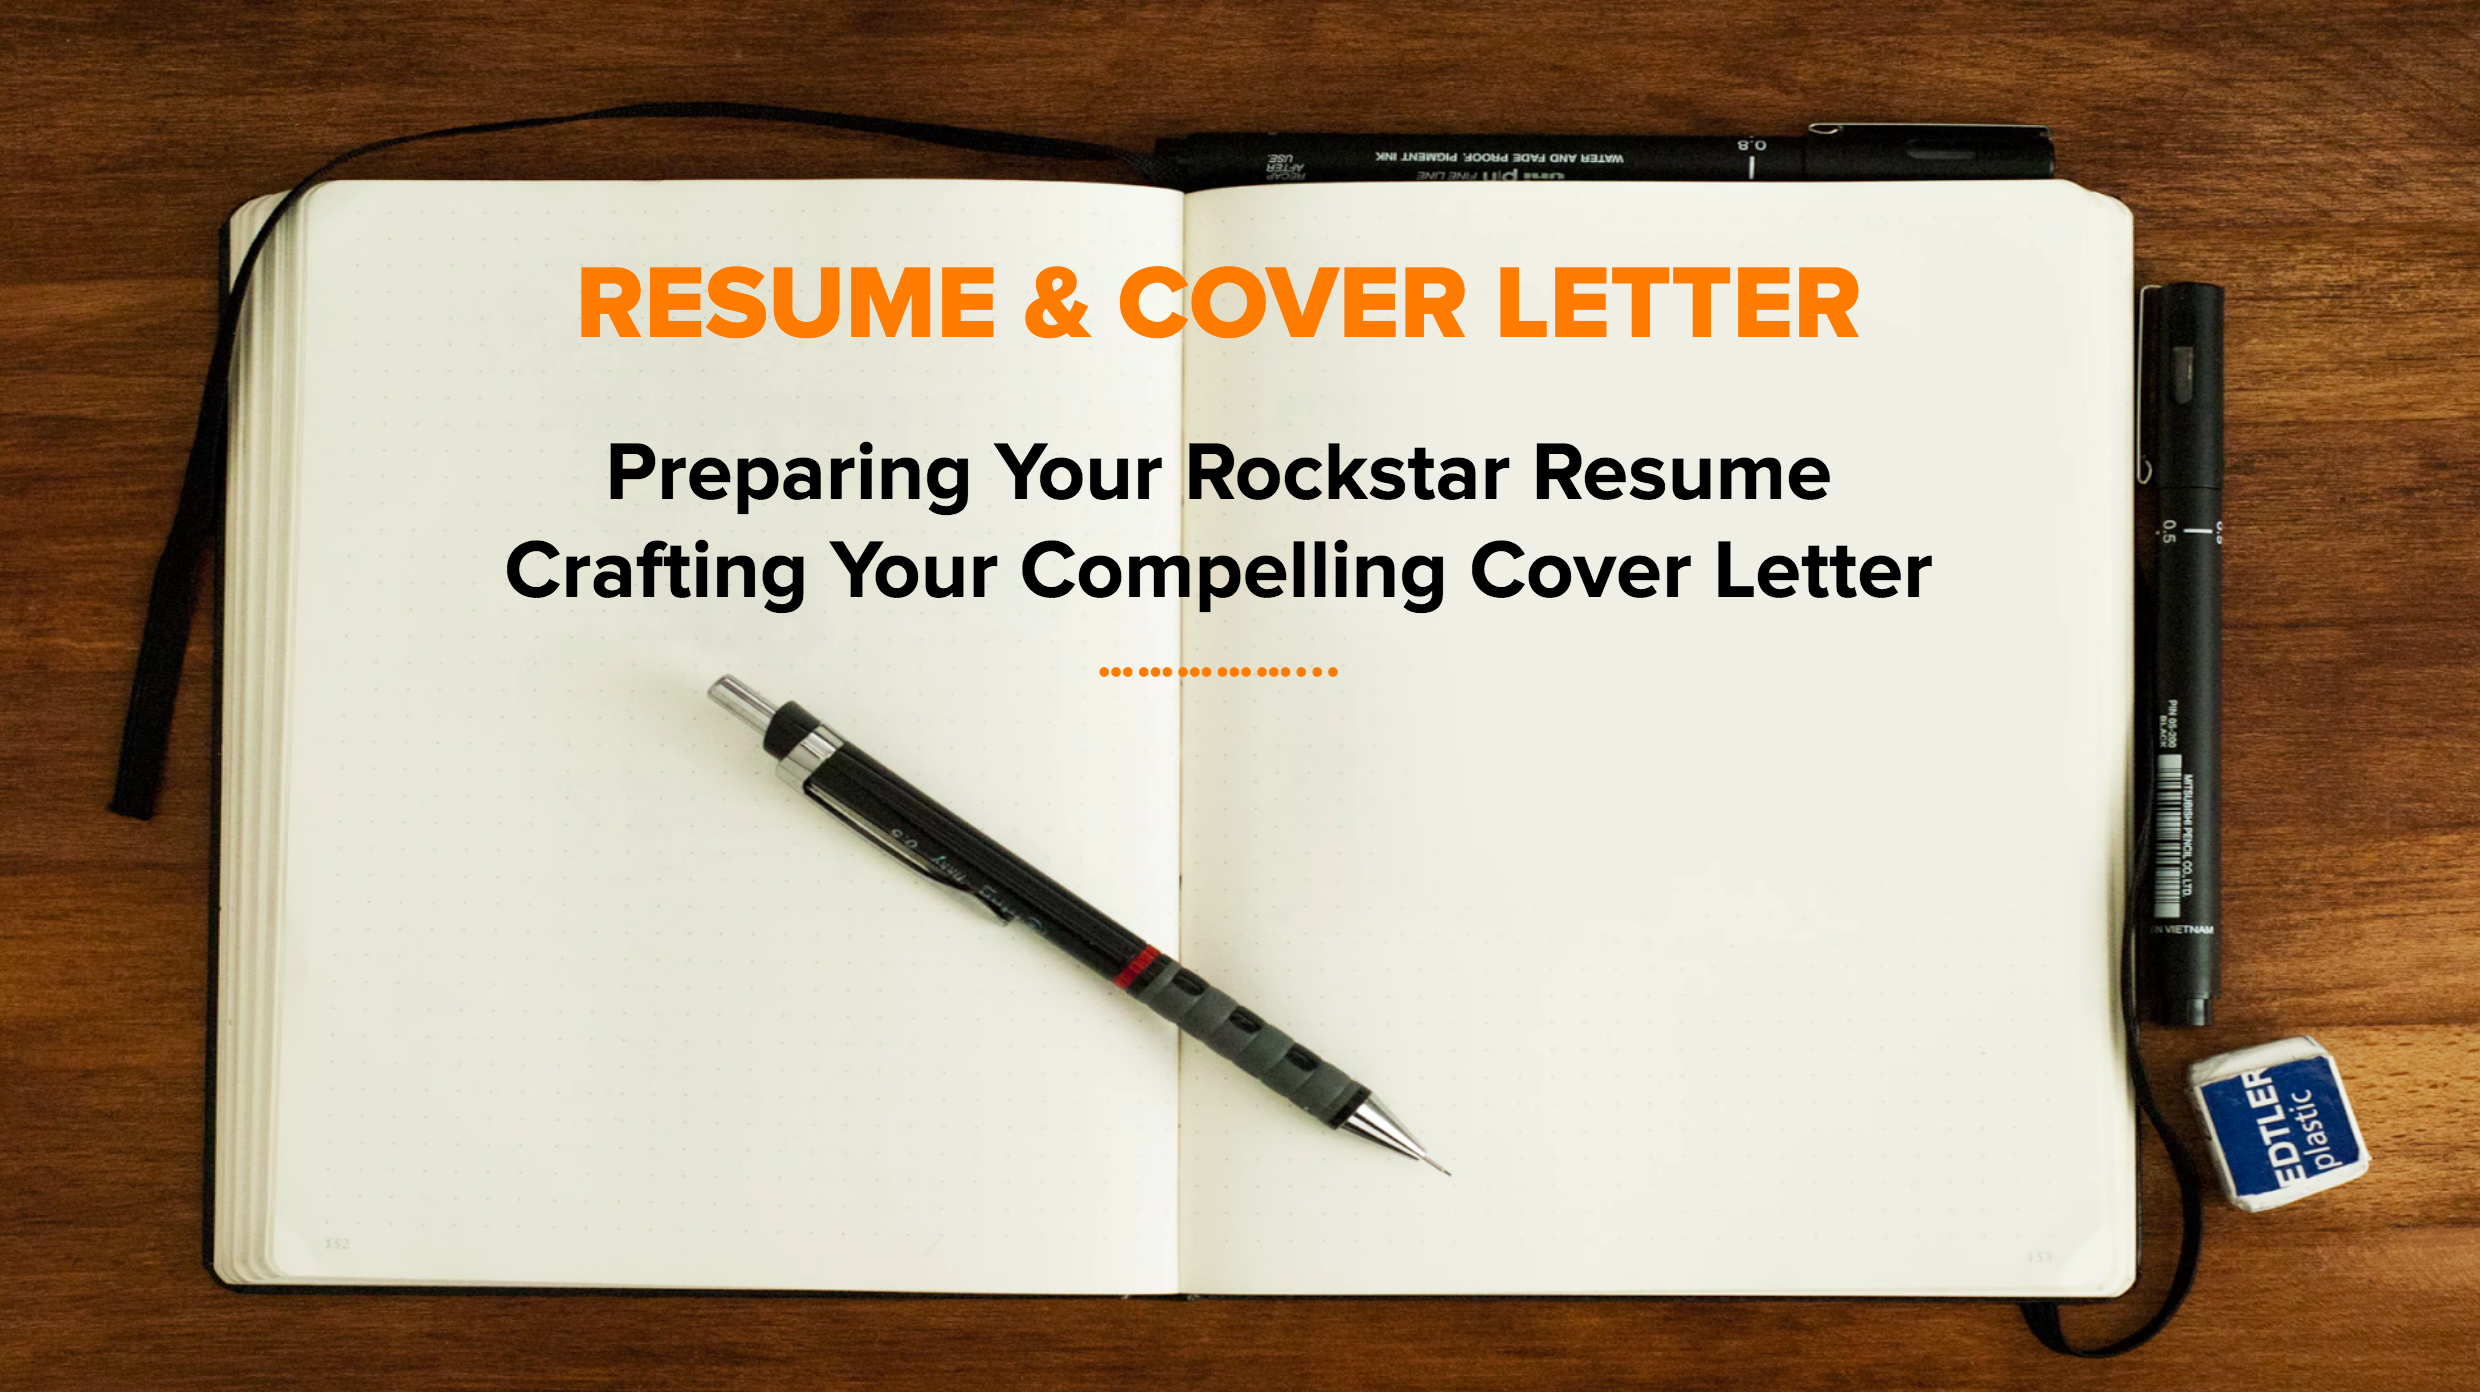 resume and cover letter advanced workshop that will land you job